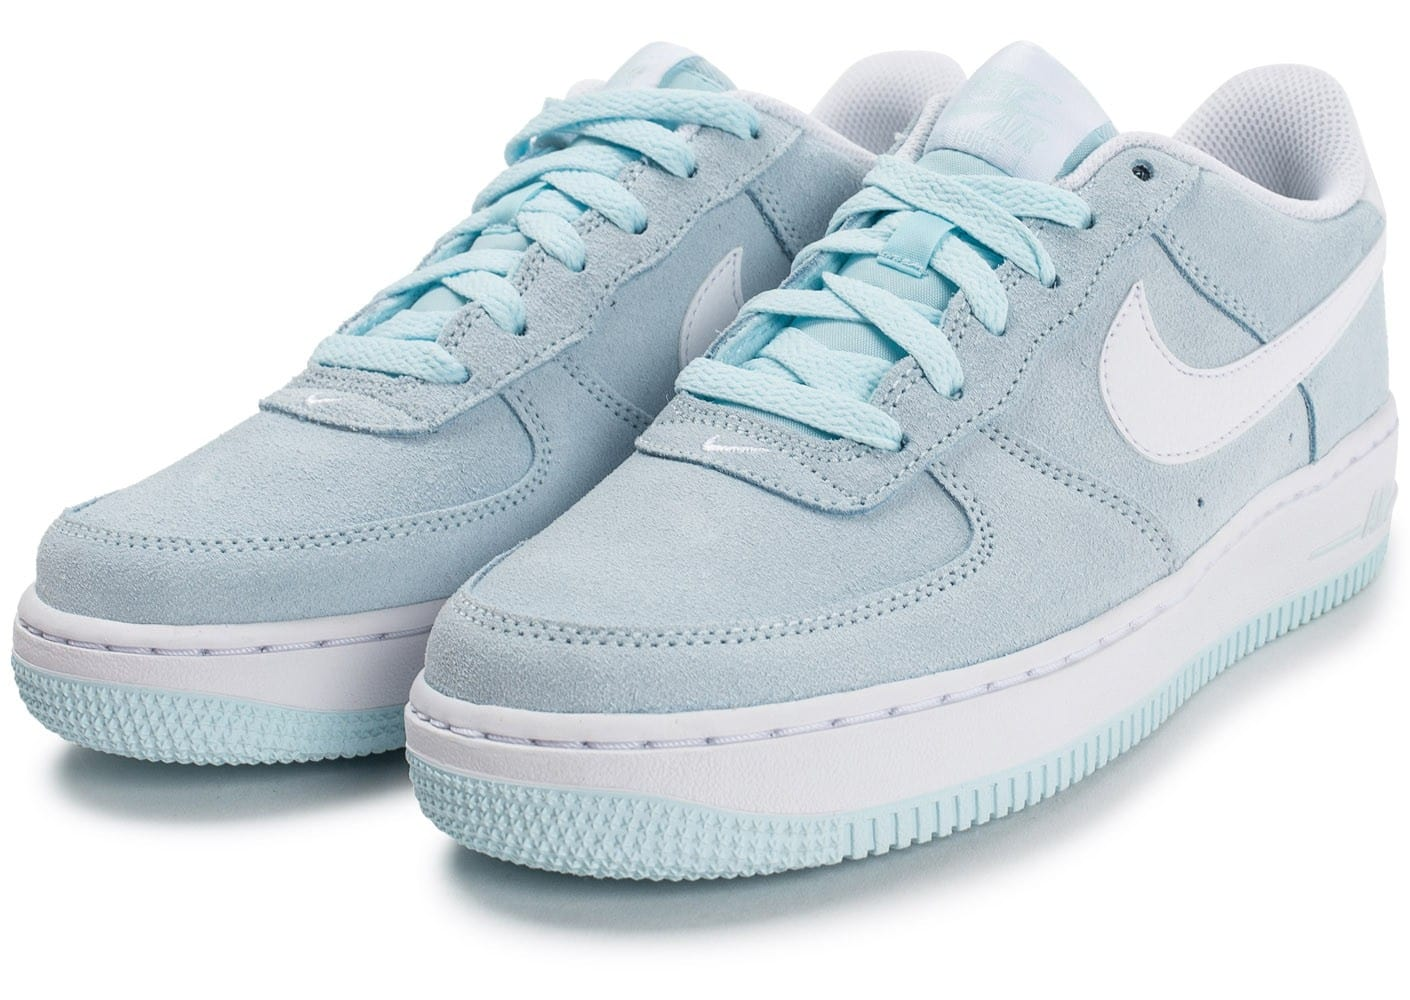 nike air force 1 femme bleu turquoise